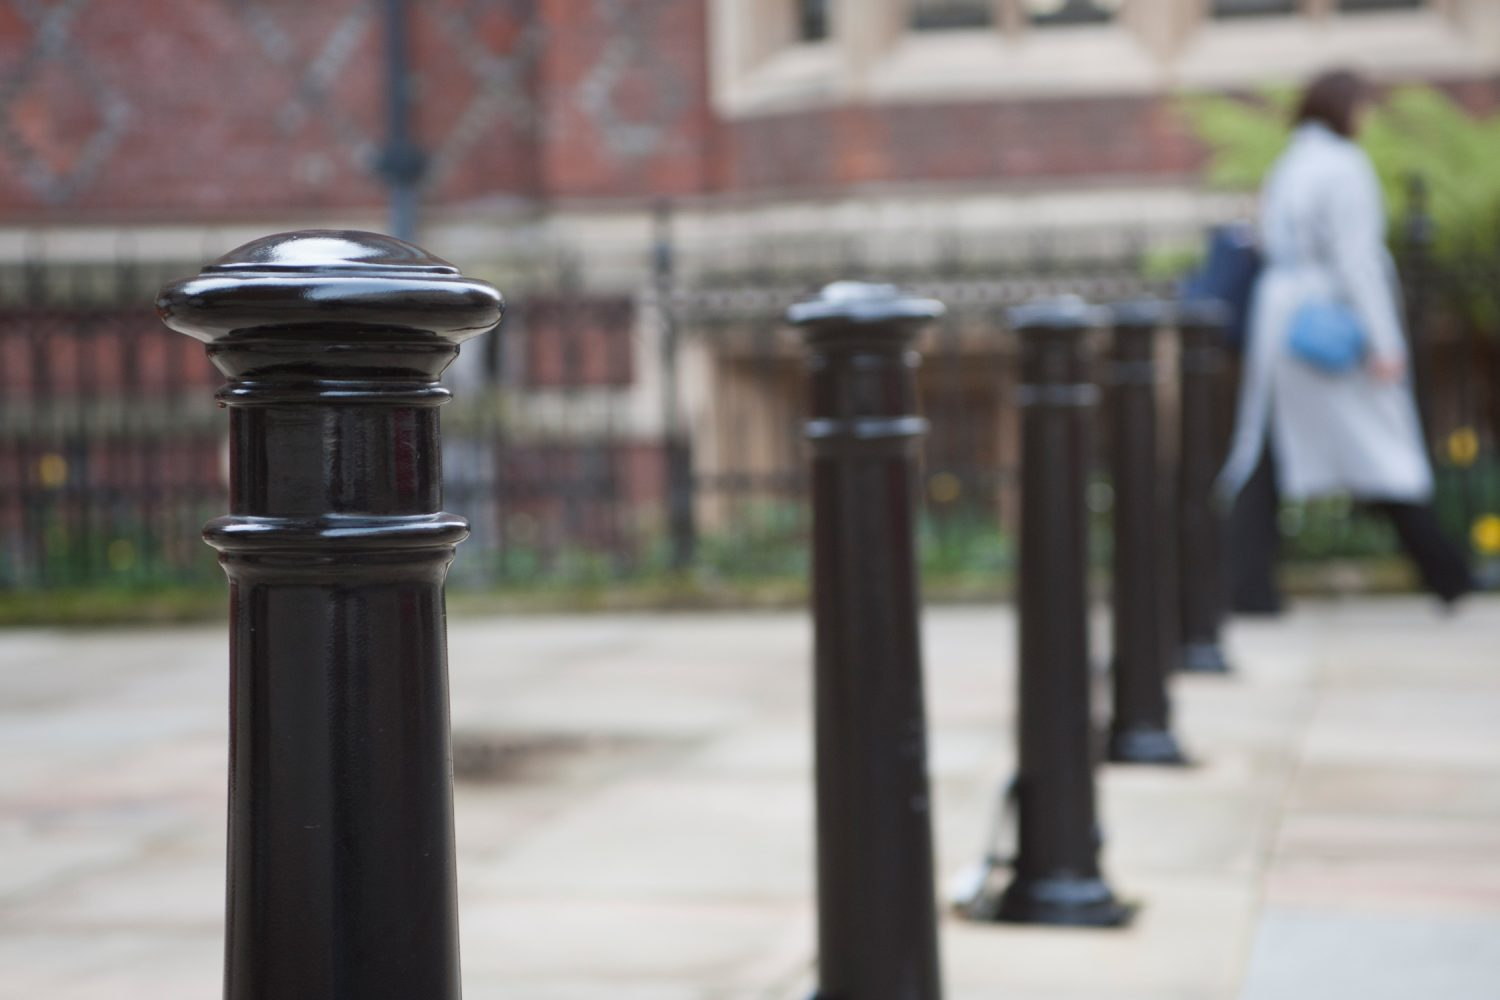 5 Stone Buildings iron bollards outside